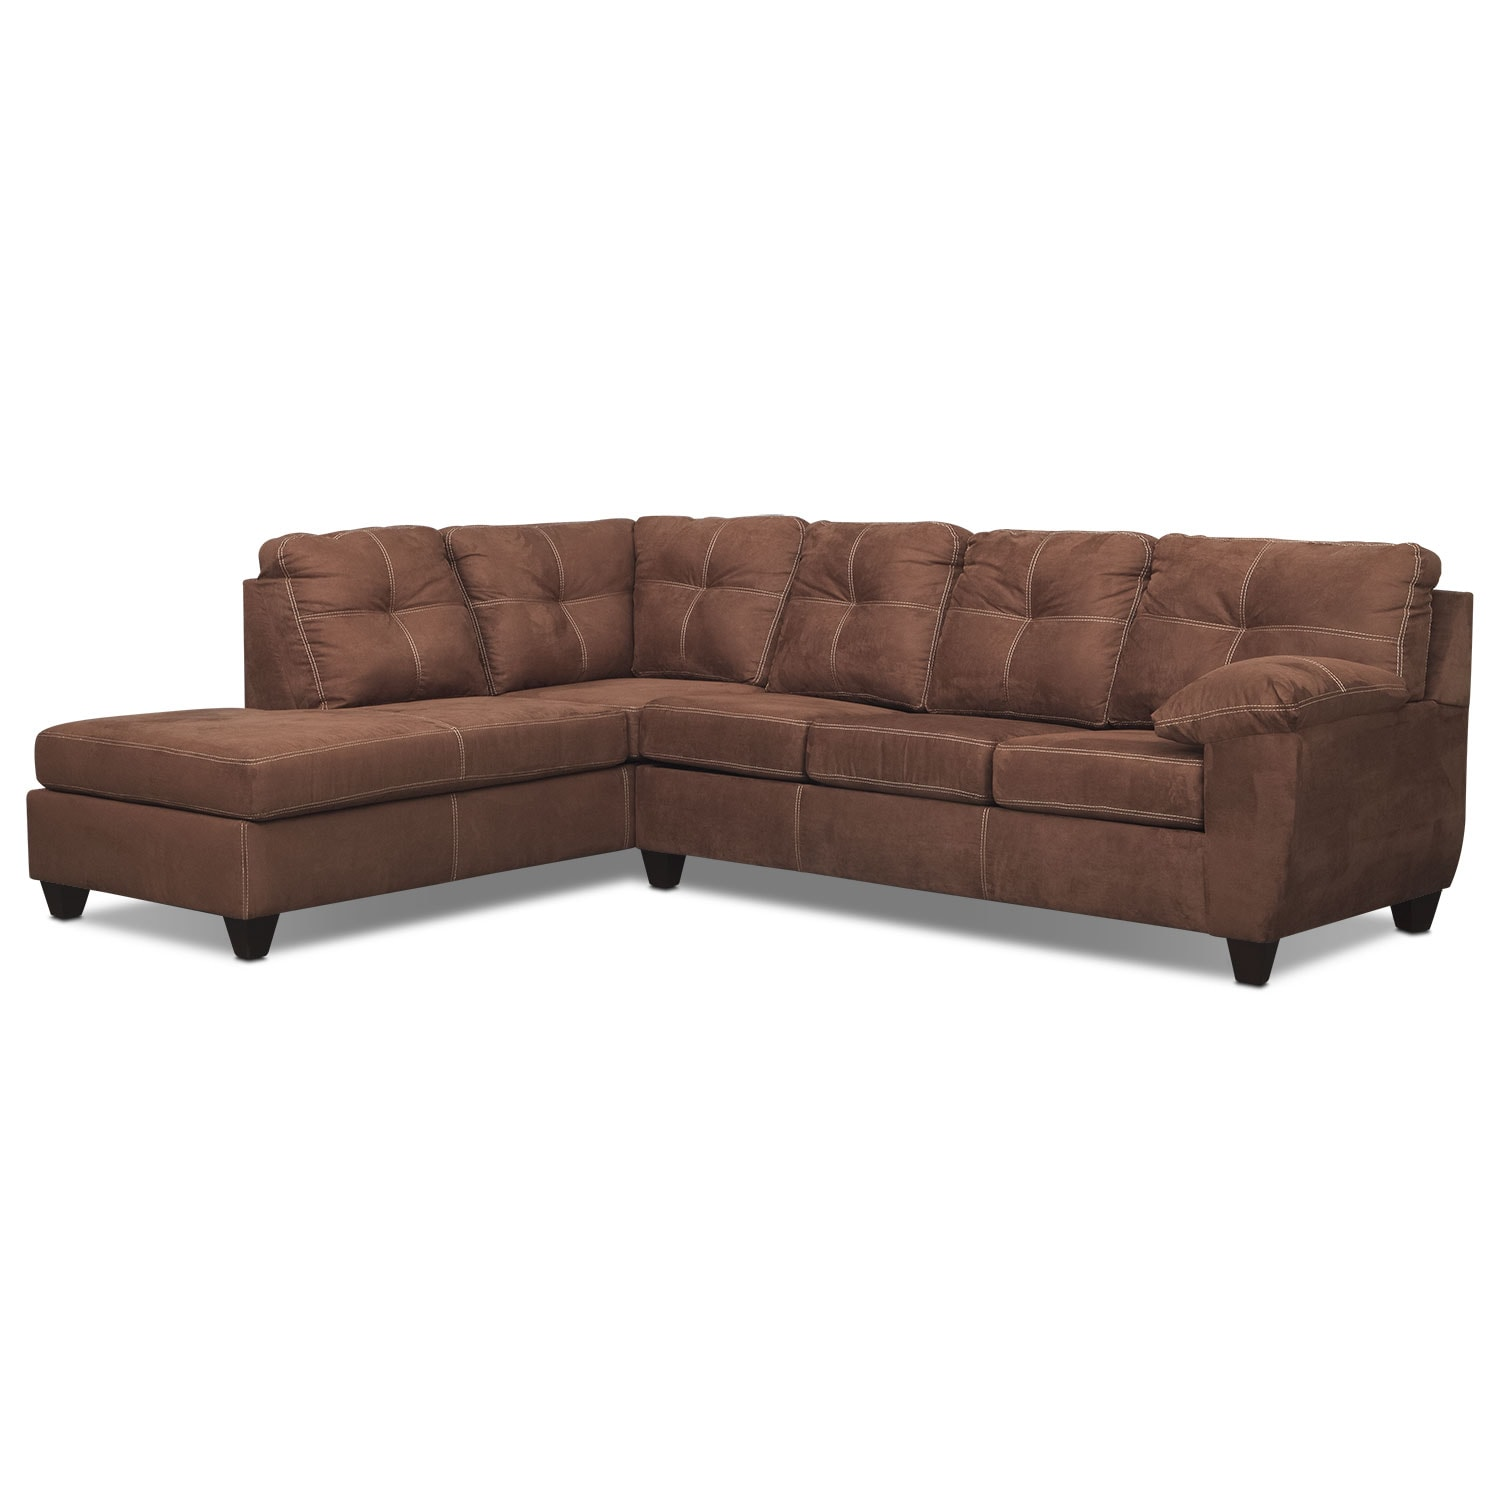 Rialto 2-Piece Memory Foam Sleeper Sectional with Left-Facing Chaise - Coffee